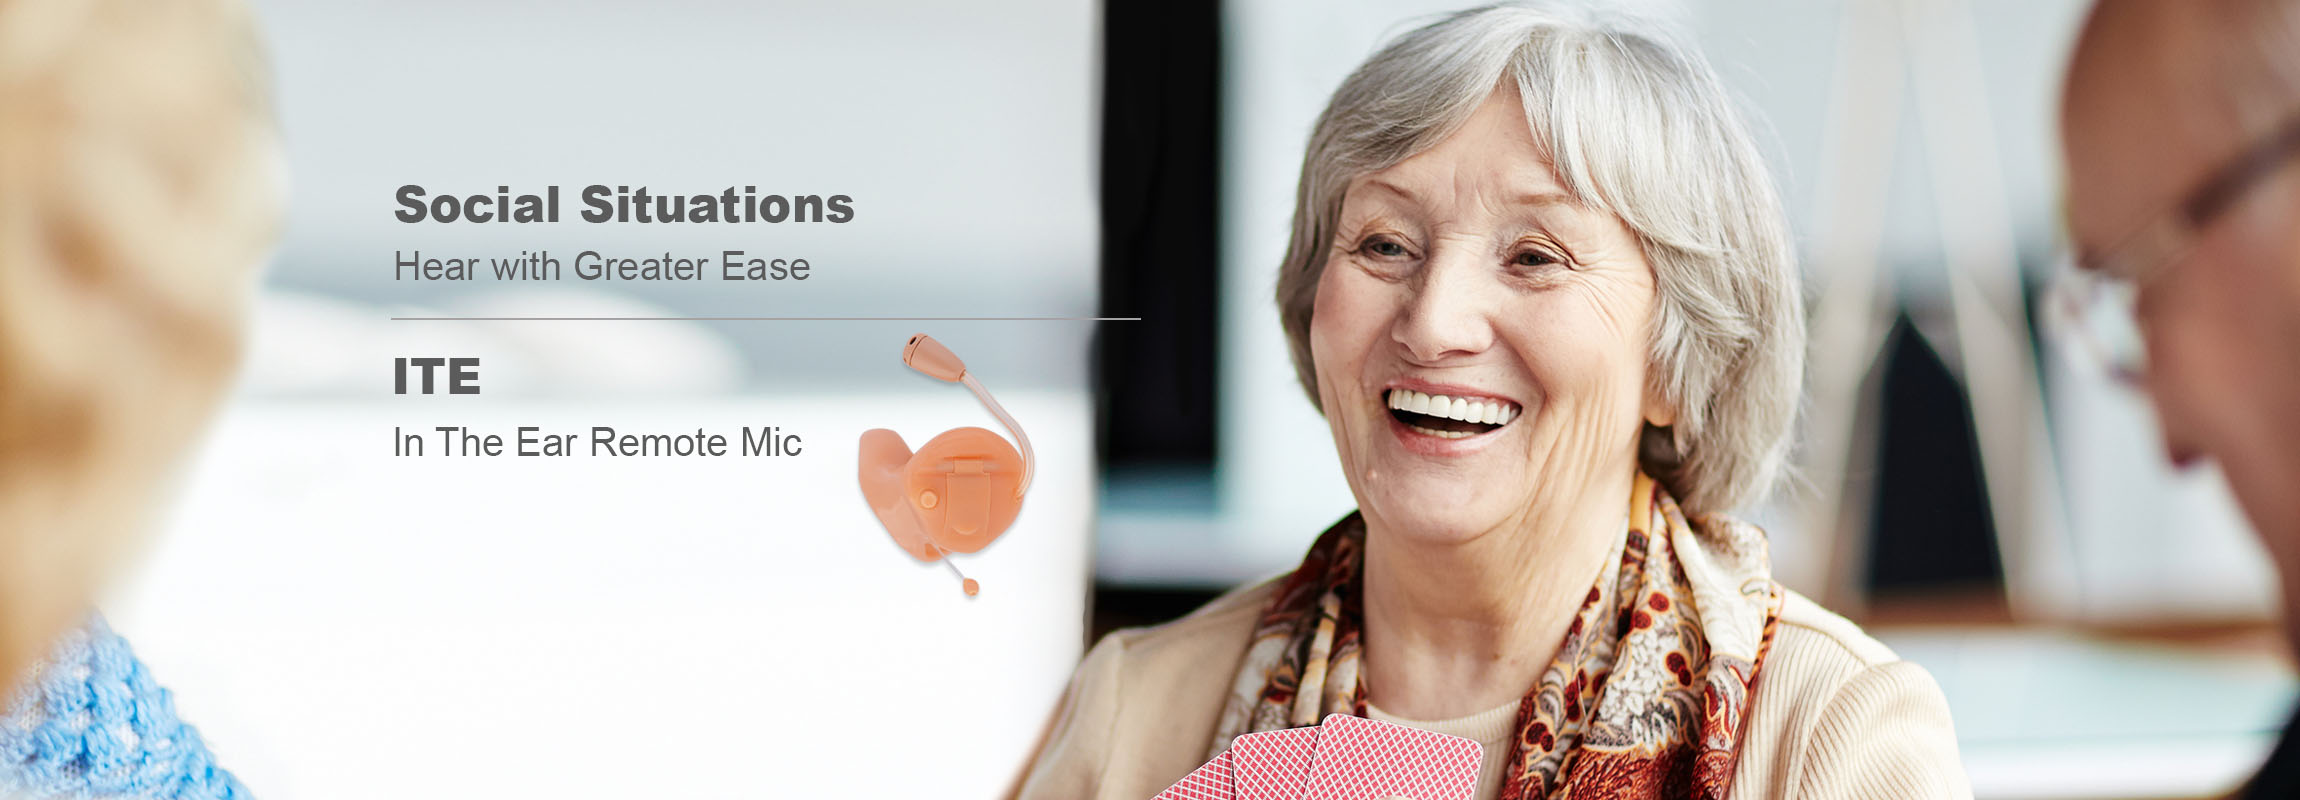 hear-greater-ease-hearing-aid